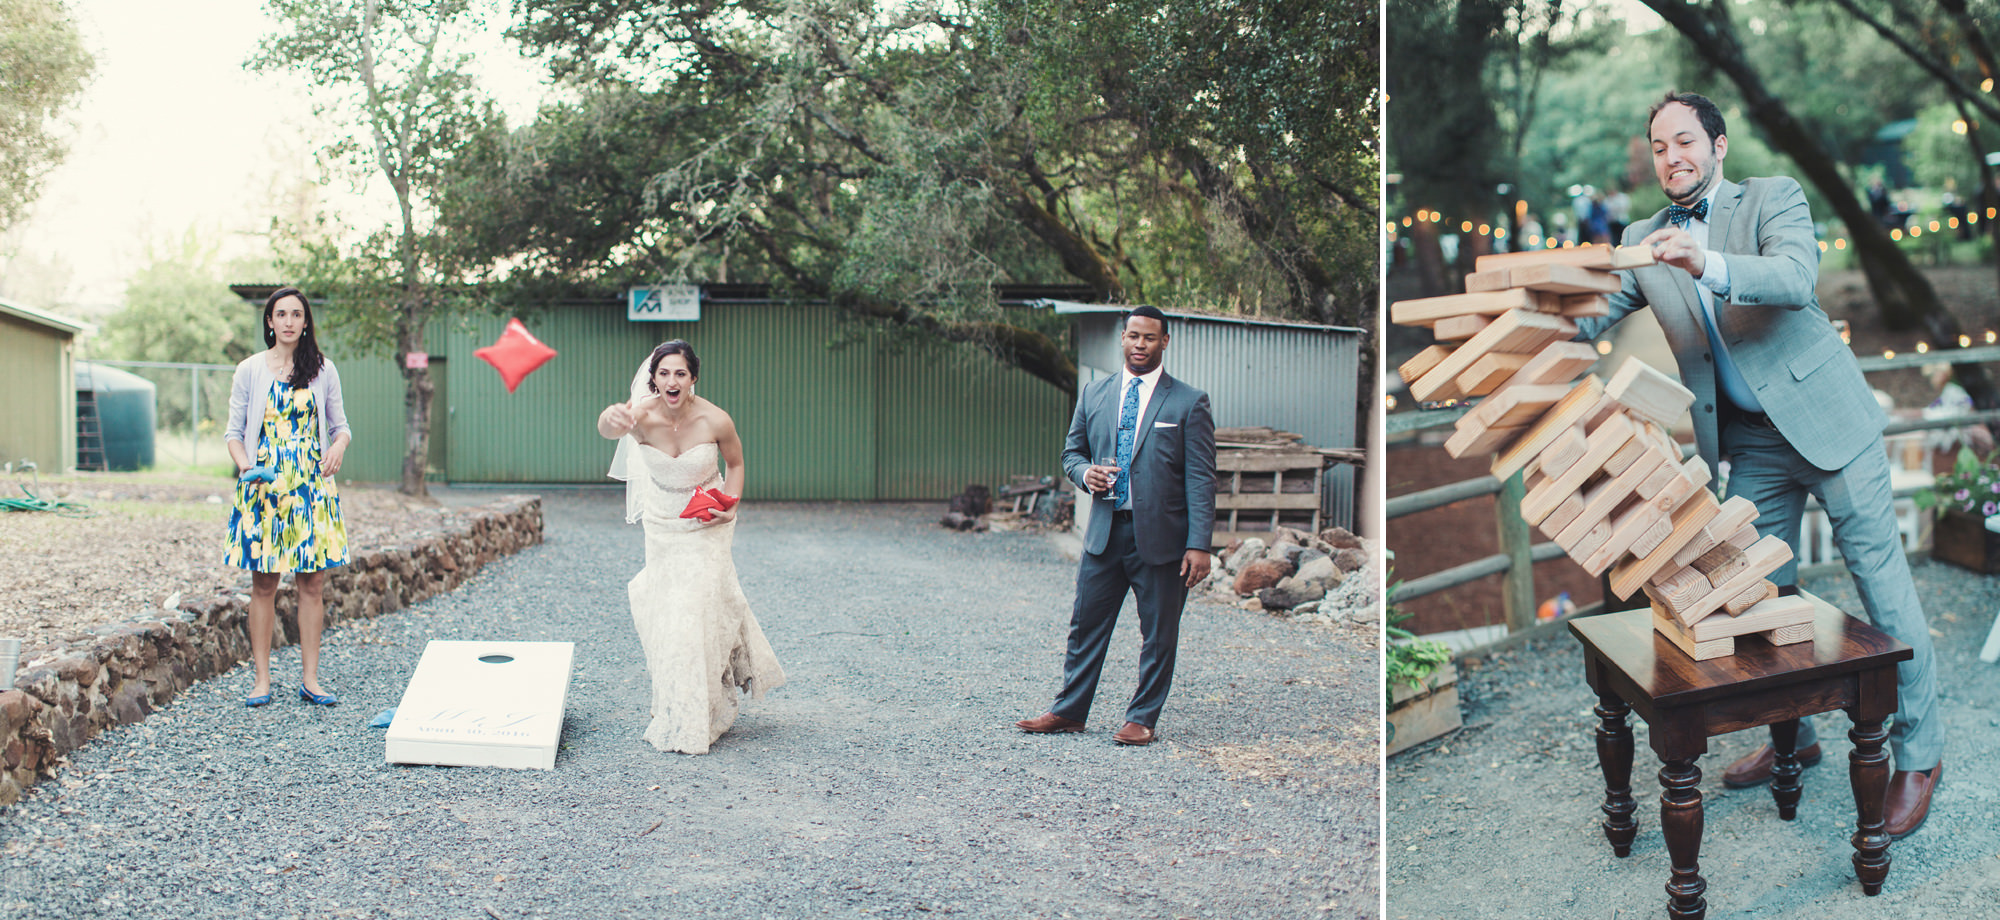 Backyard Wedding in California©Anne-Claire Brun 0032